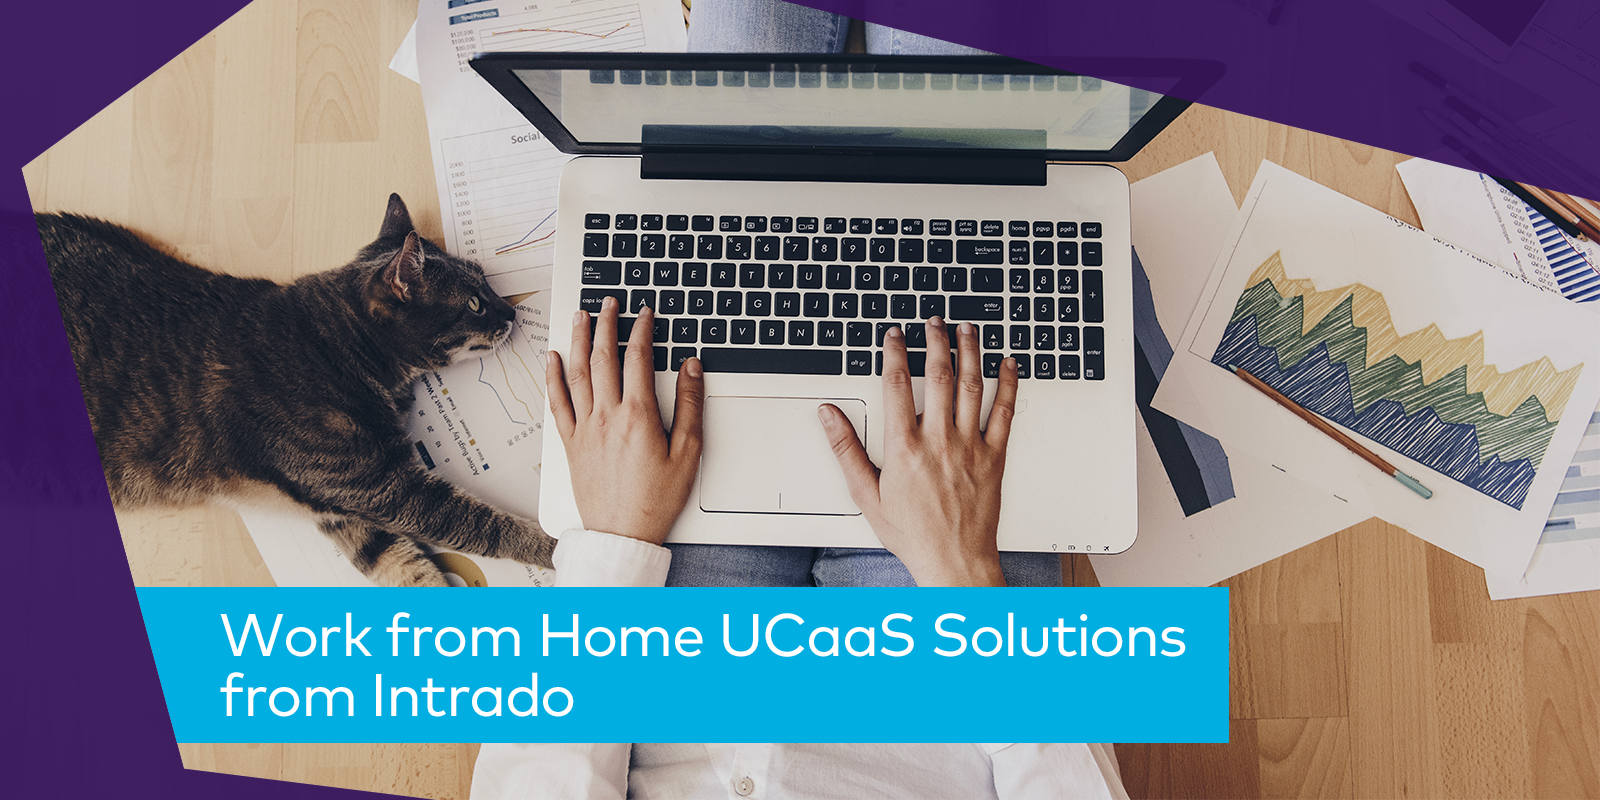 Image: Work from Home UCaaS Solutions from Intrado